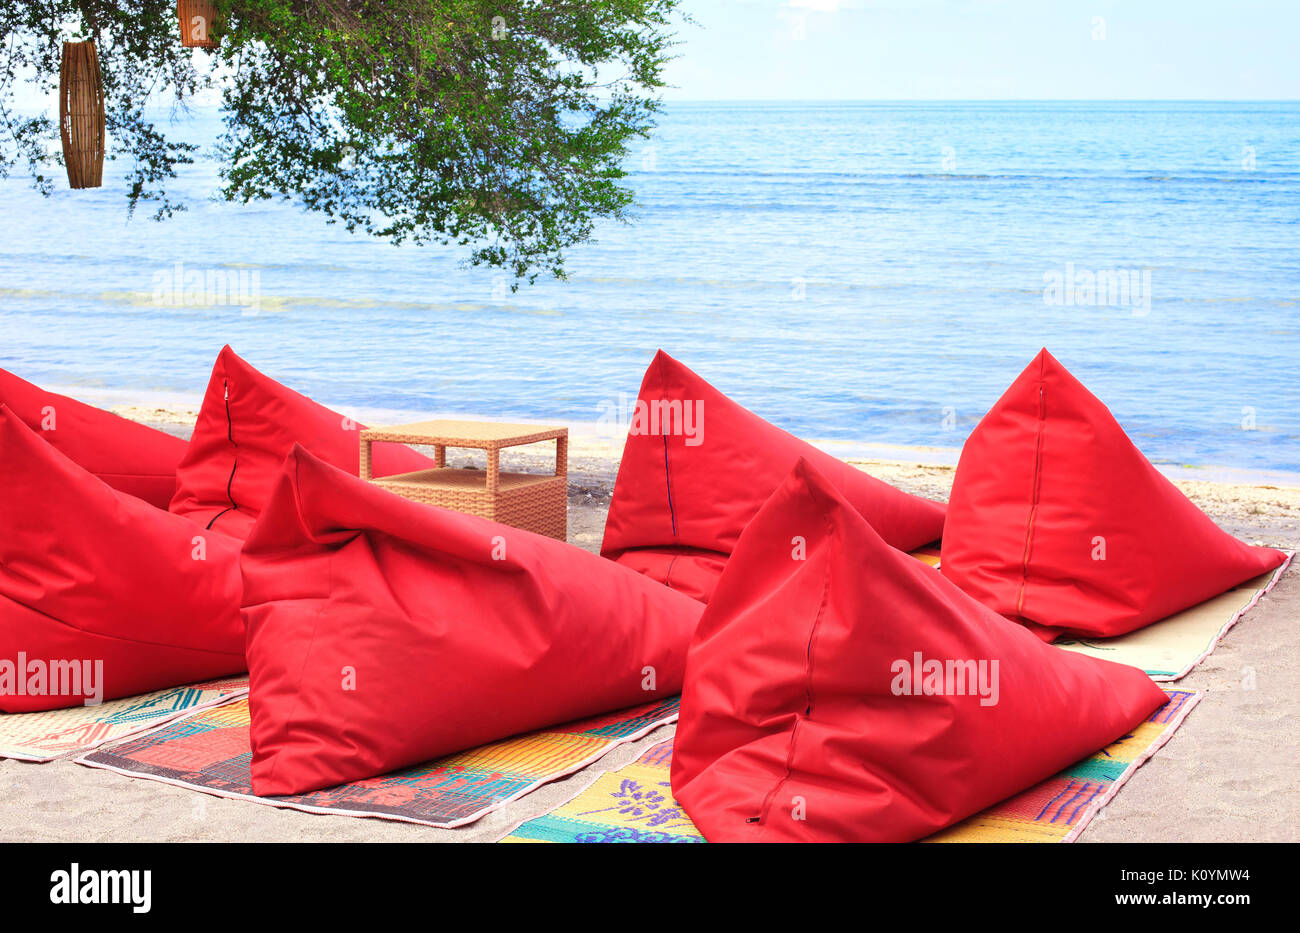 A lot of red Bean bags and table set on the ocean beach - Stock Image